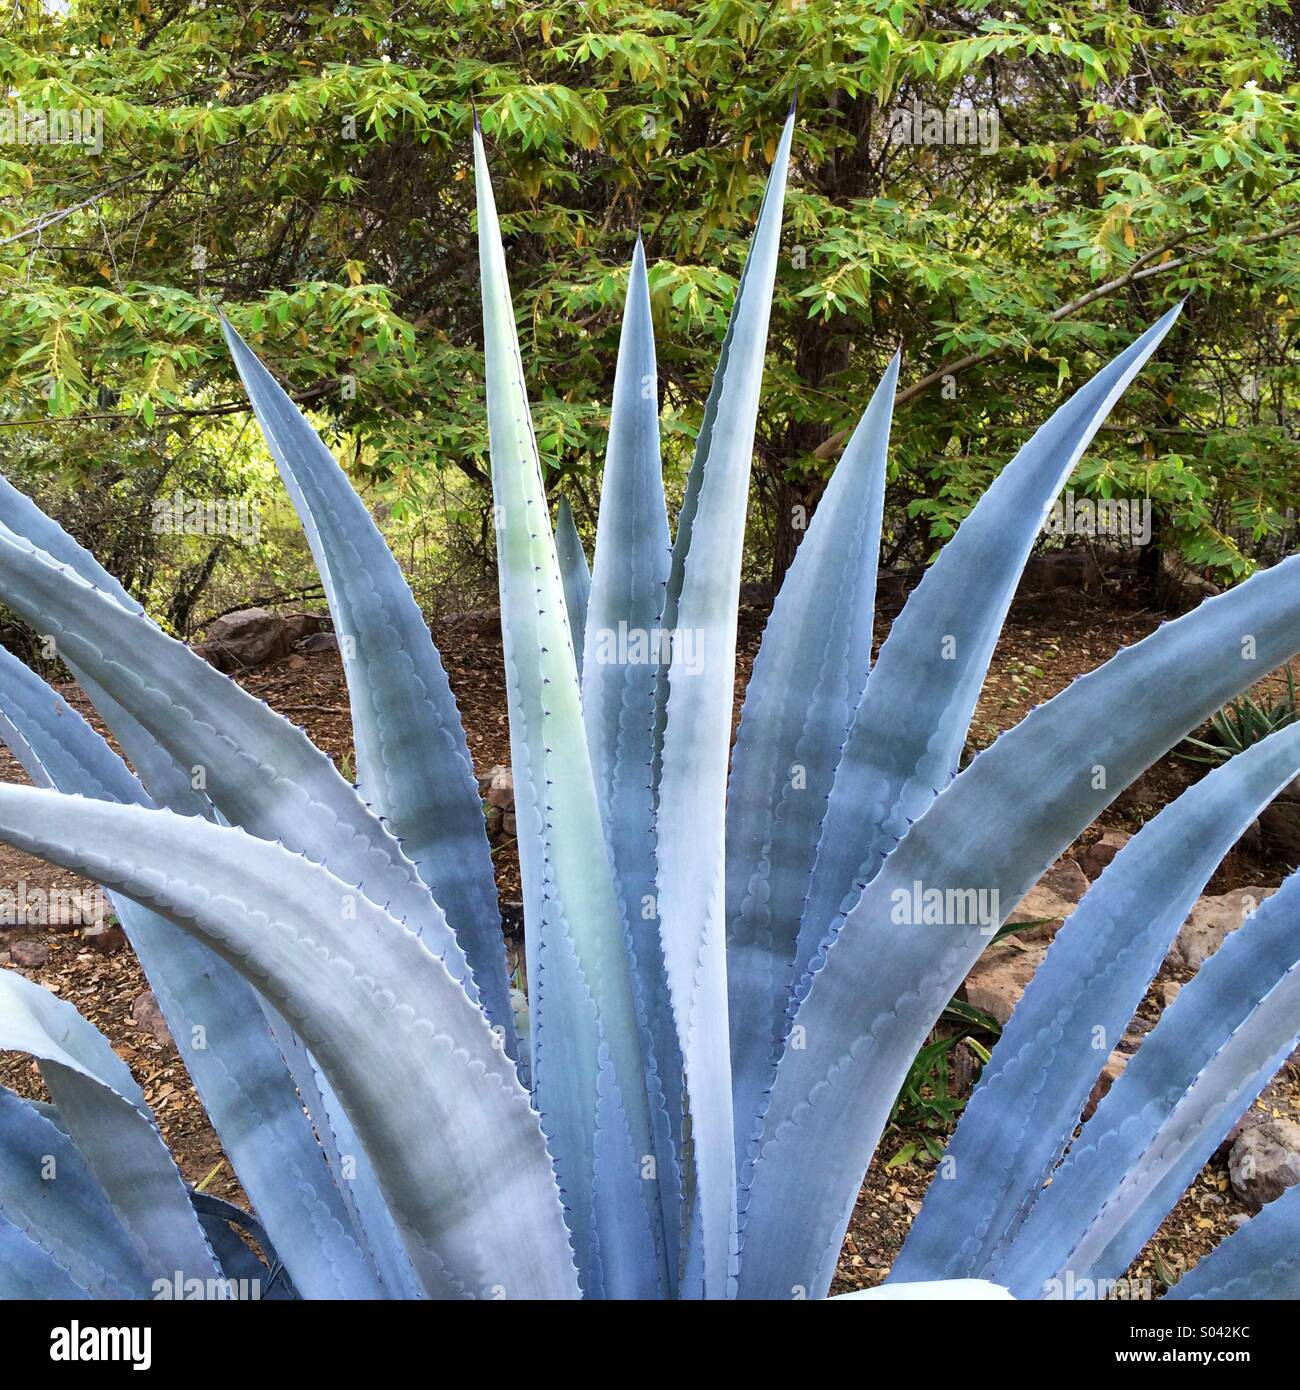 Blue agave plant, Chaparri Reserve, northern Peru Stock Photo